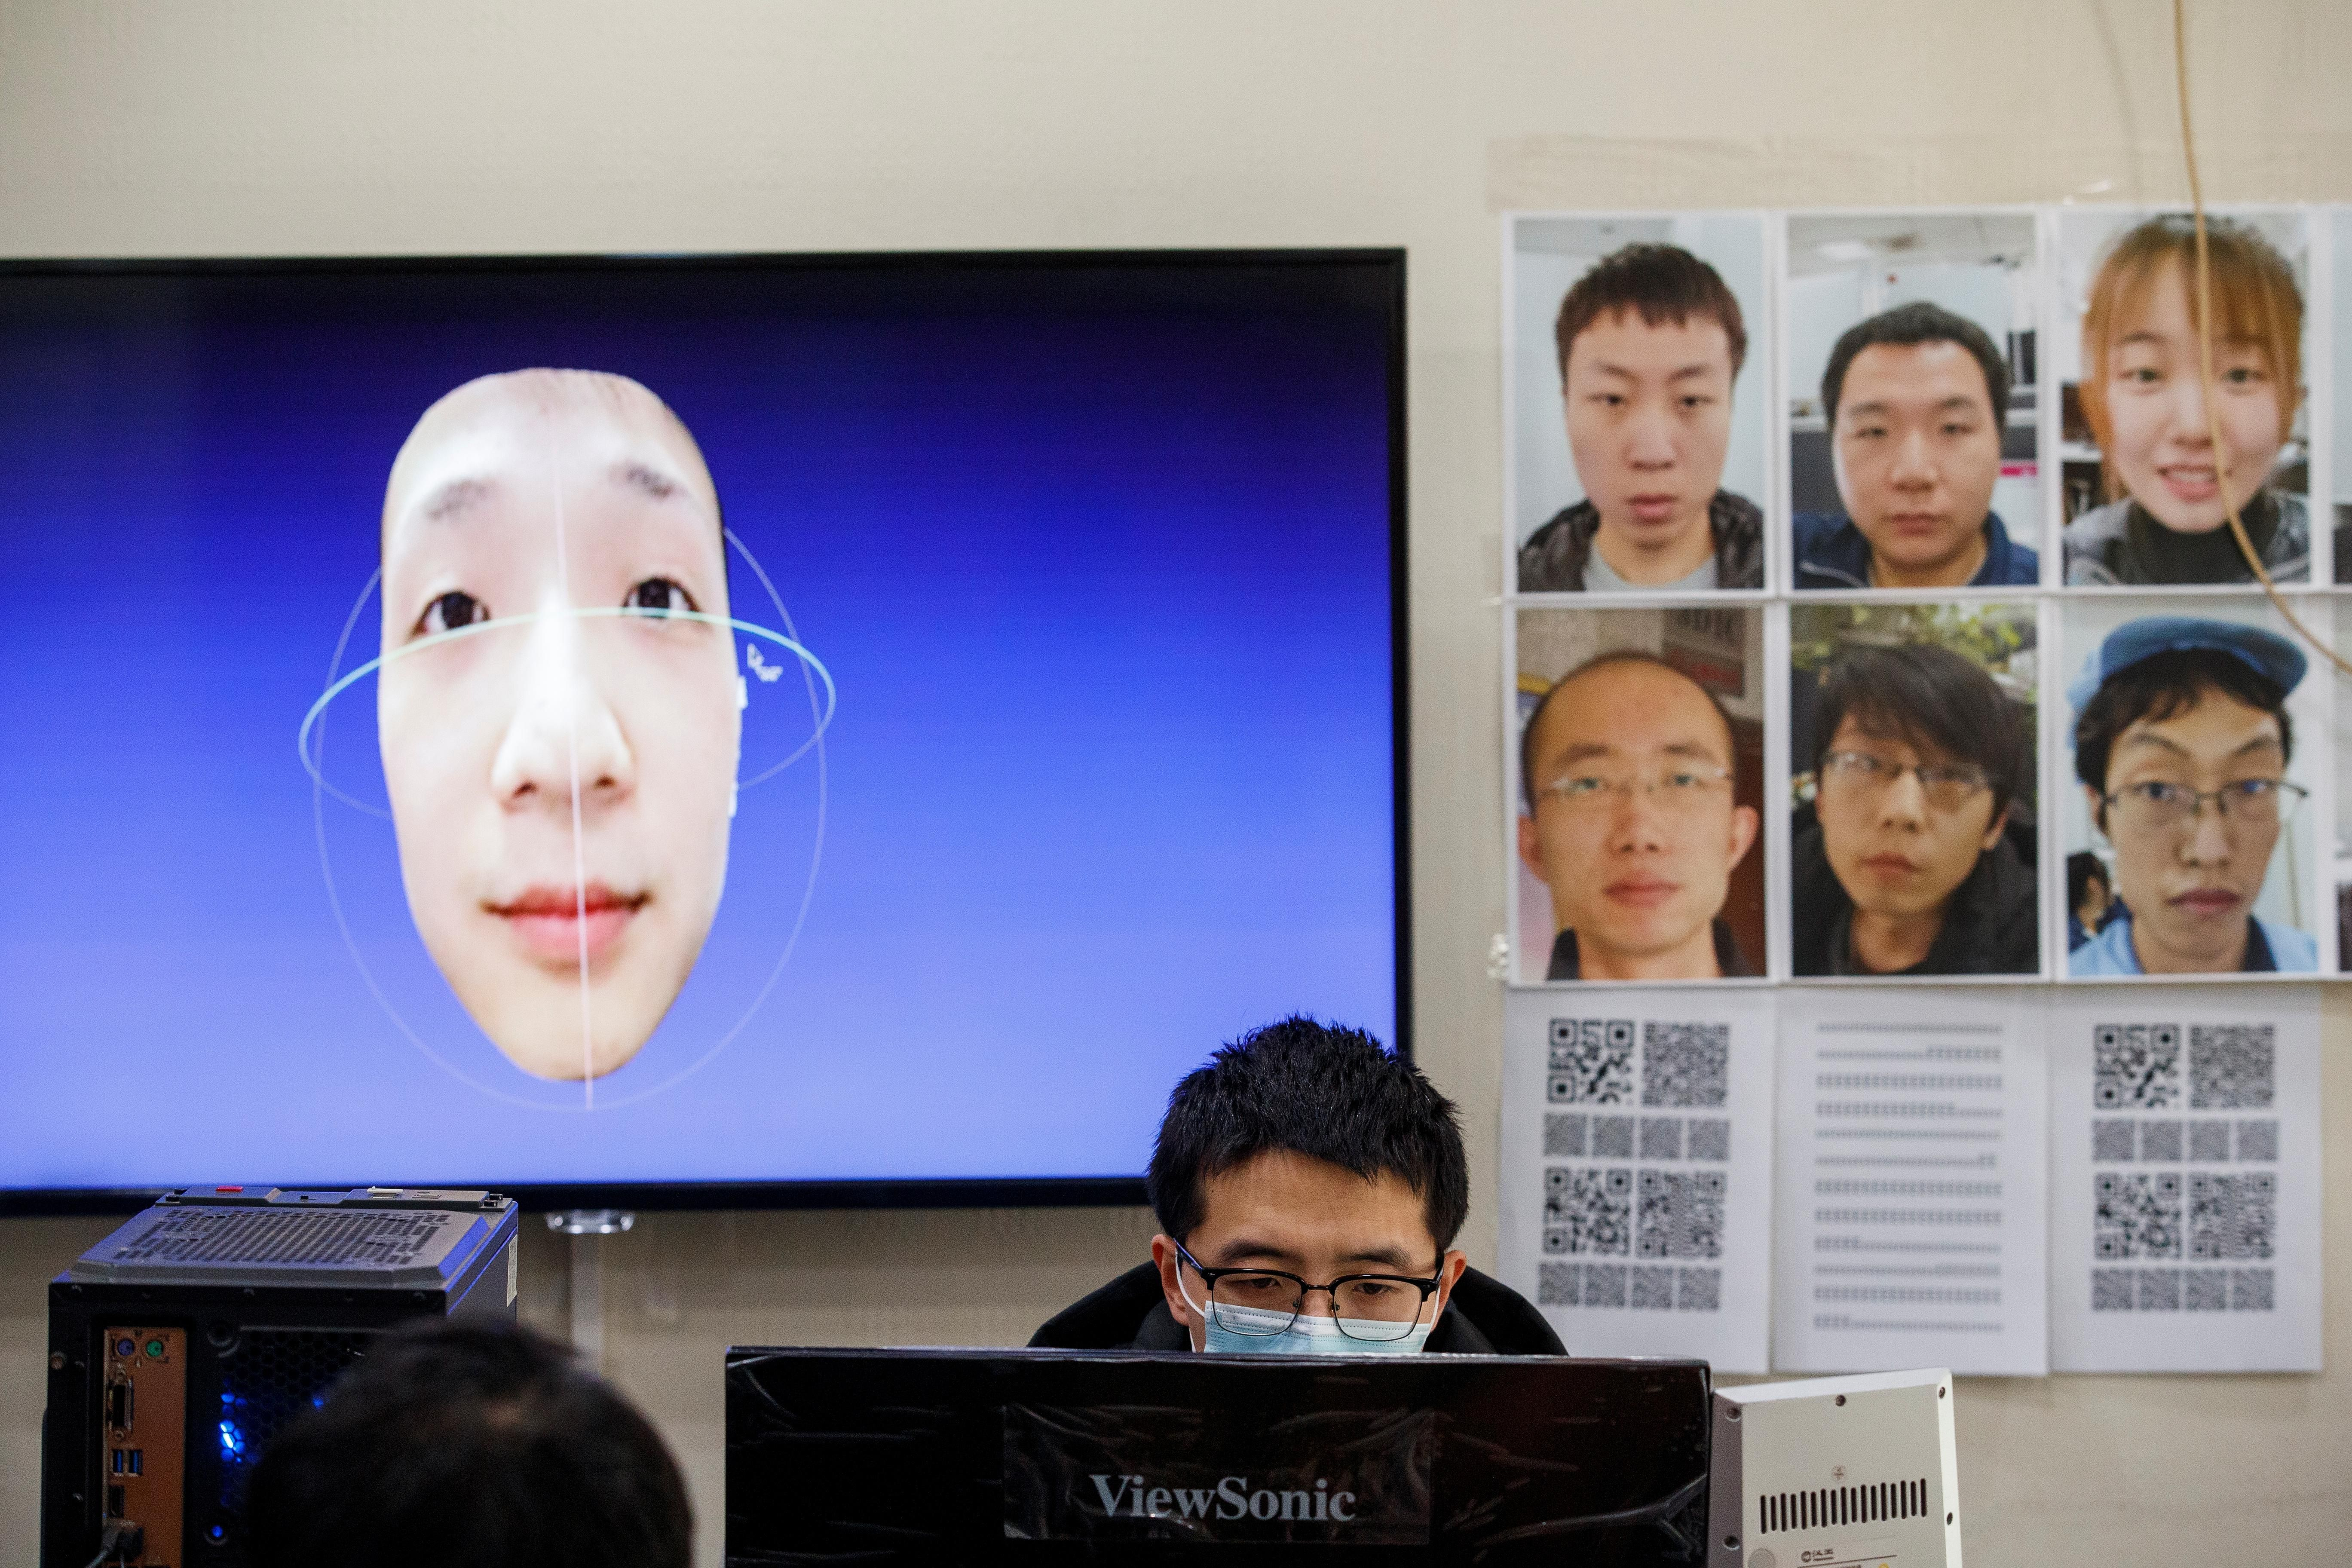 Even maskwearers can be ID'd, China facial recognition